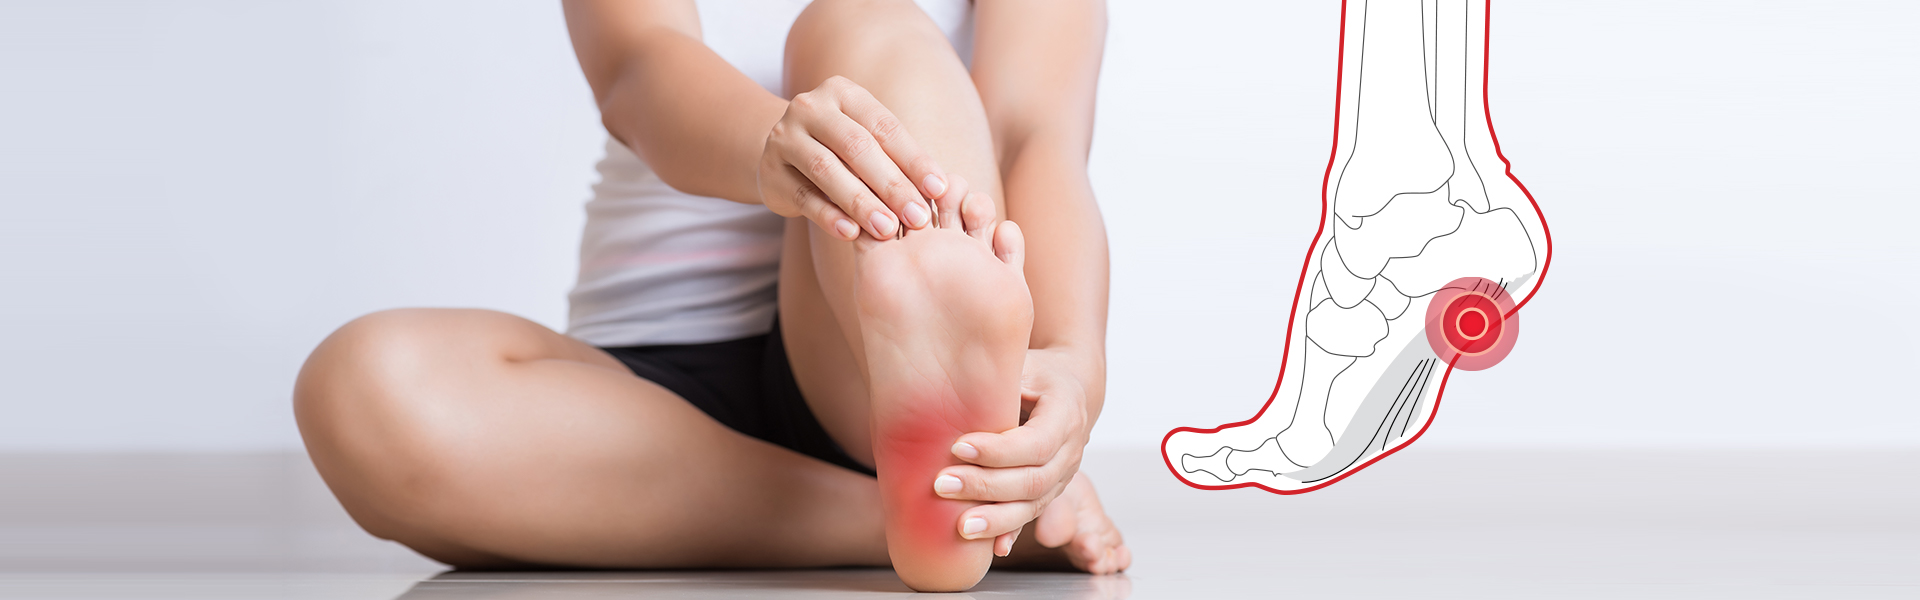 Plantar Fasciitis Sole Solution